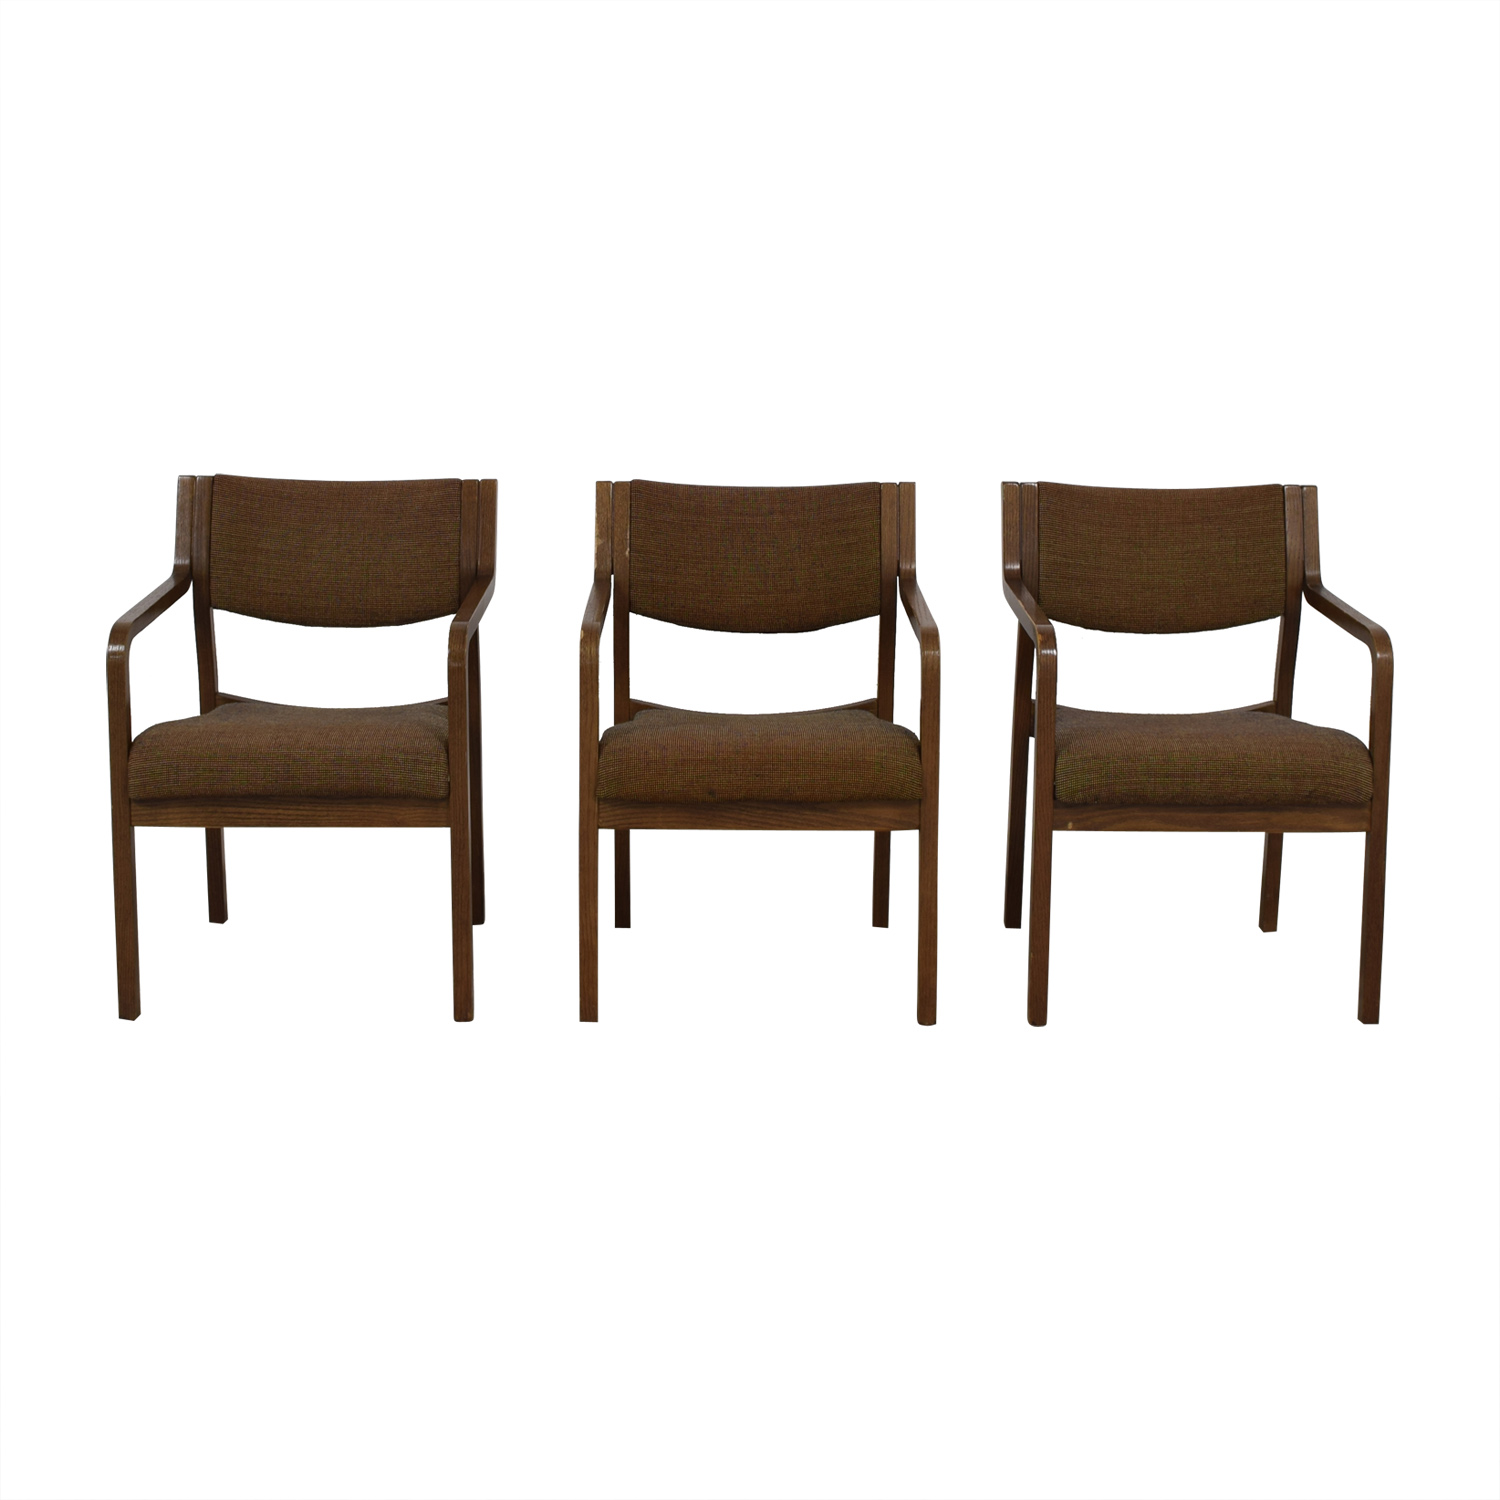 buy Thonet Thonet Bentwood Vintage Chairs online